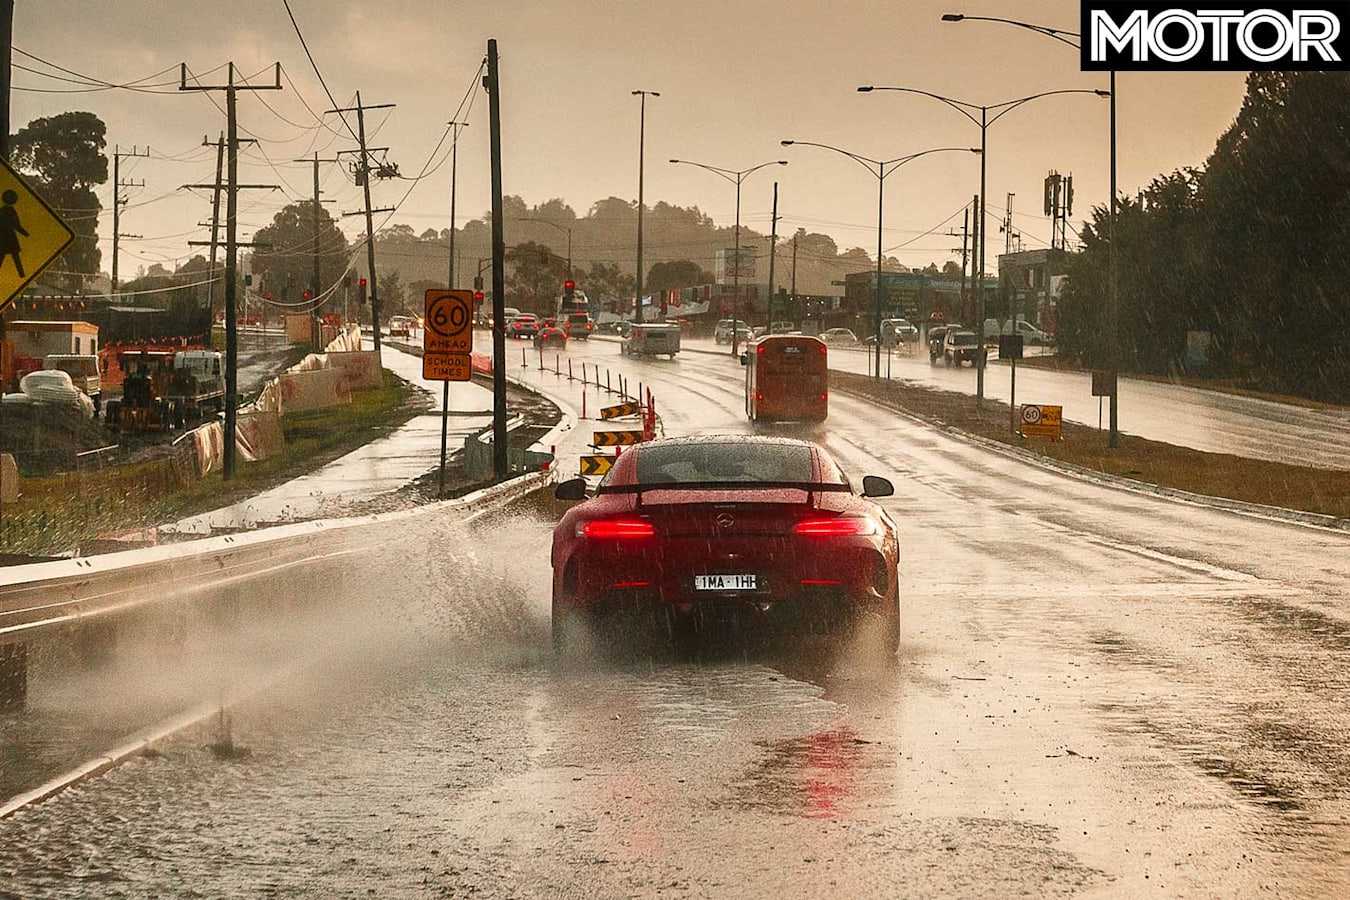 2019 Mercedes AMG GT R 12 Hours Review Wet Road Jpg